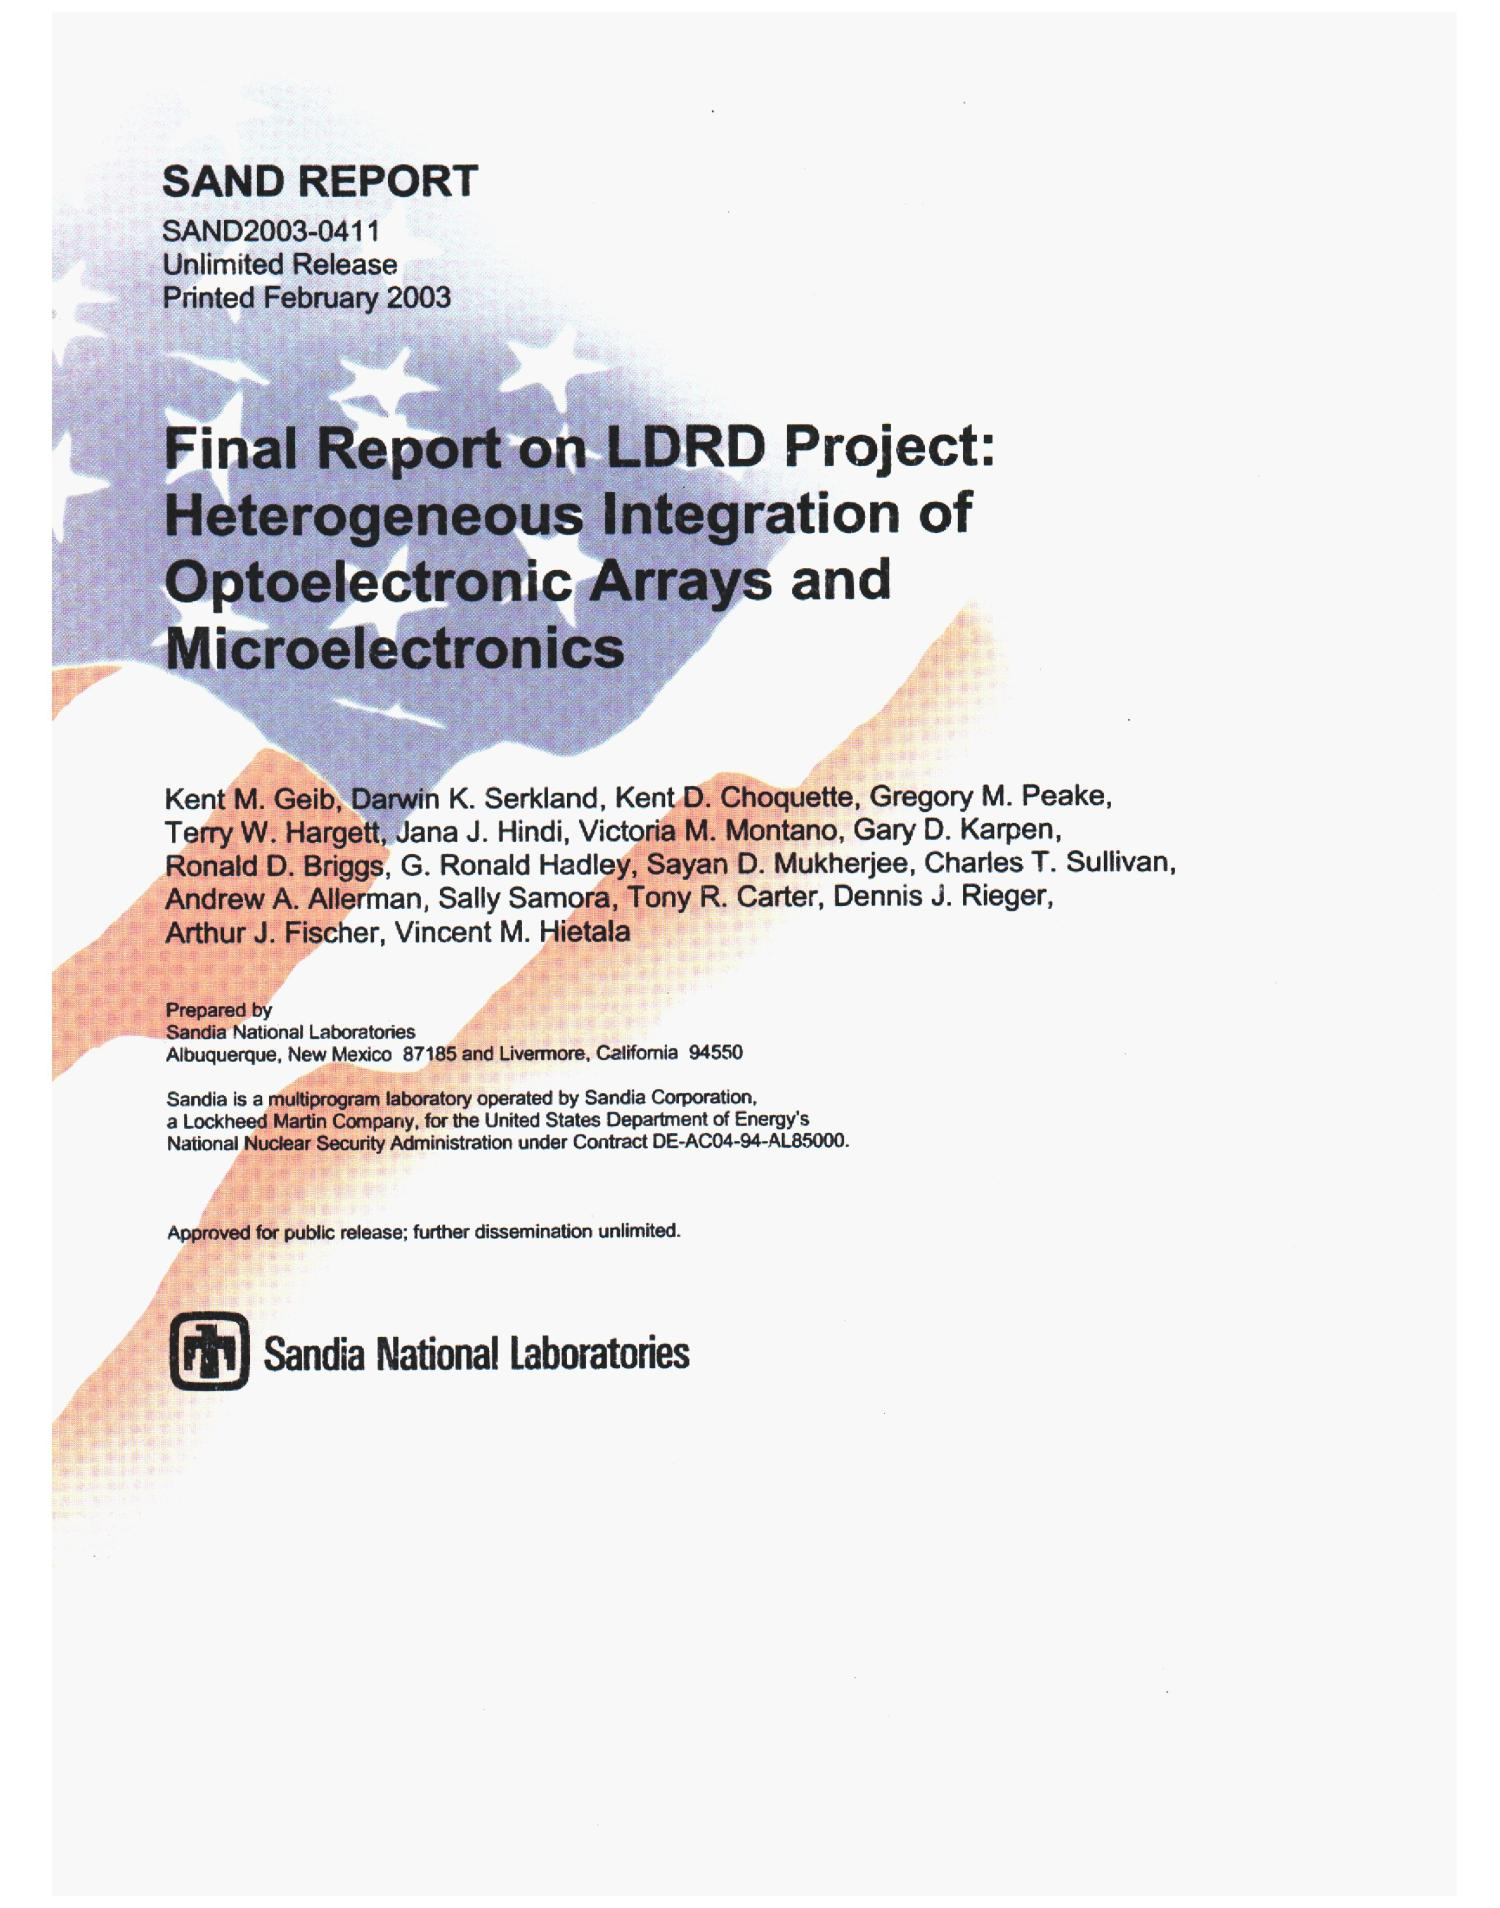 Final Report on LDRD Project: Heterogeneous Integration of Optoelectronic Arrays and Microelectronics                                                                                                      [Sequence #]: 1 of 97